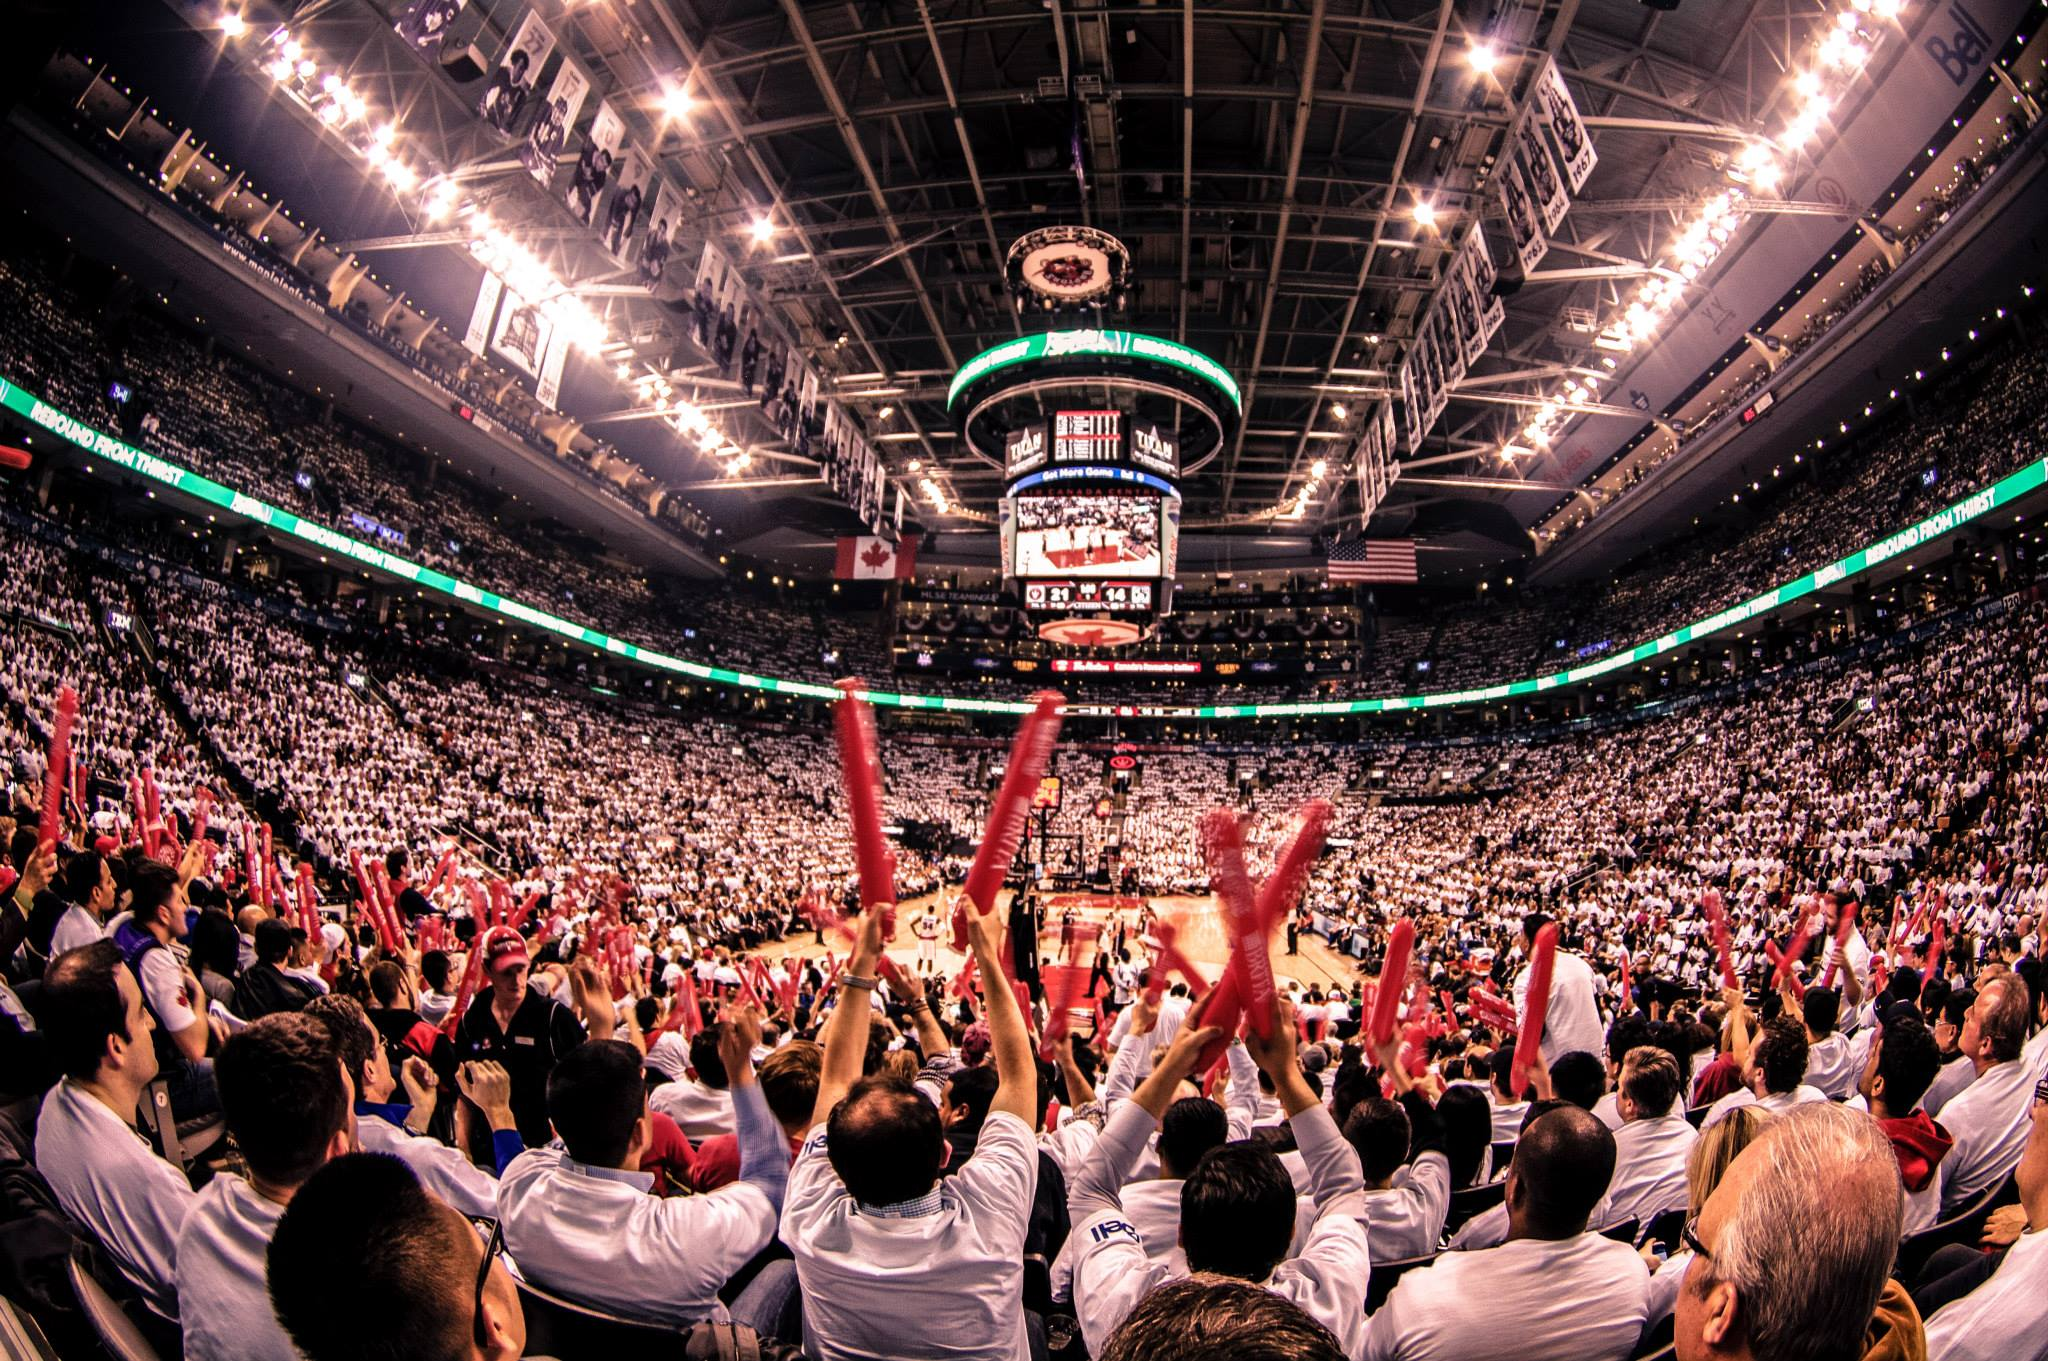 BREAKING: Toronto Raptors win Canada's first ever NBA Championship